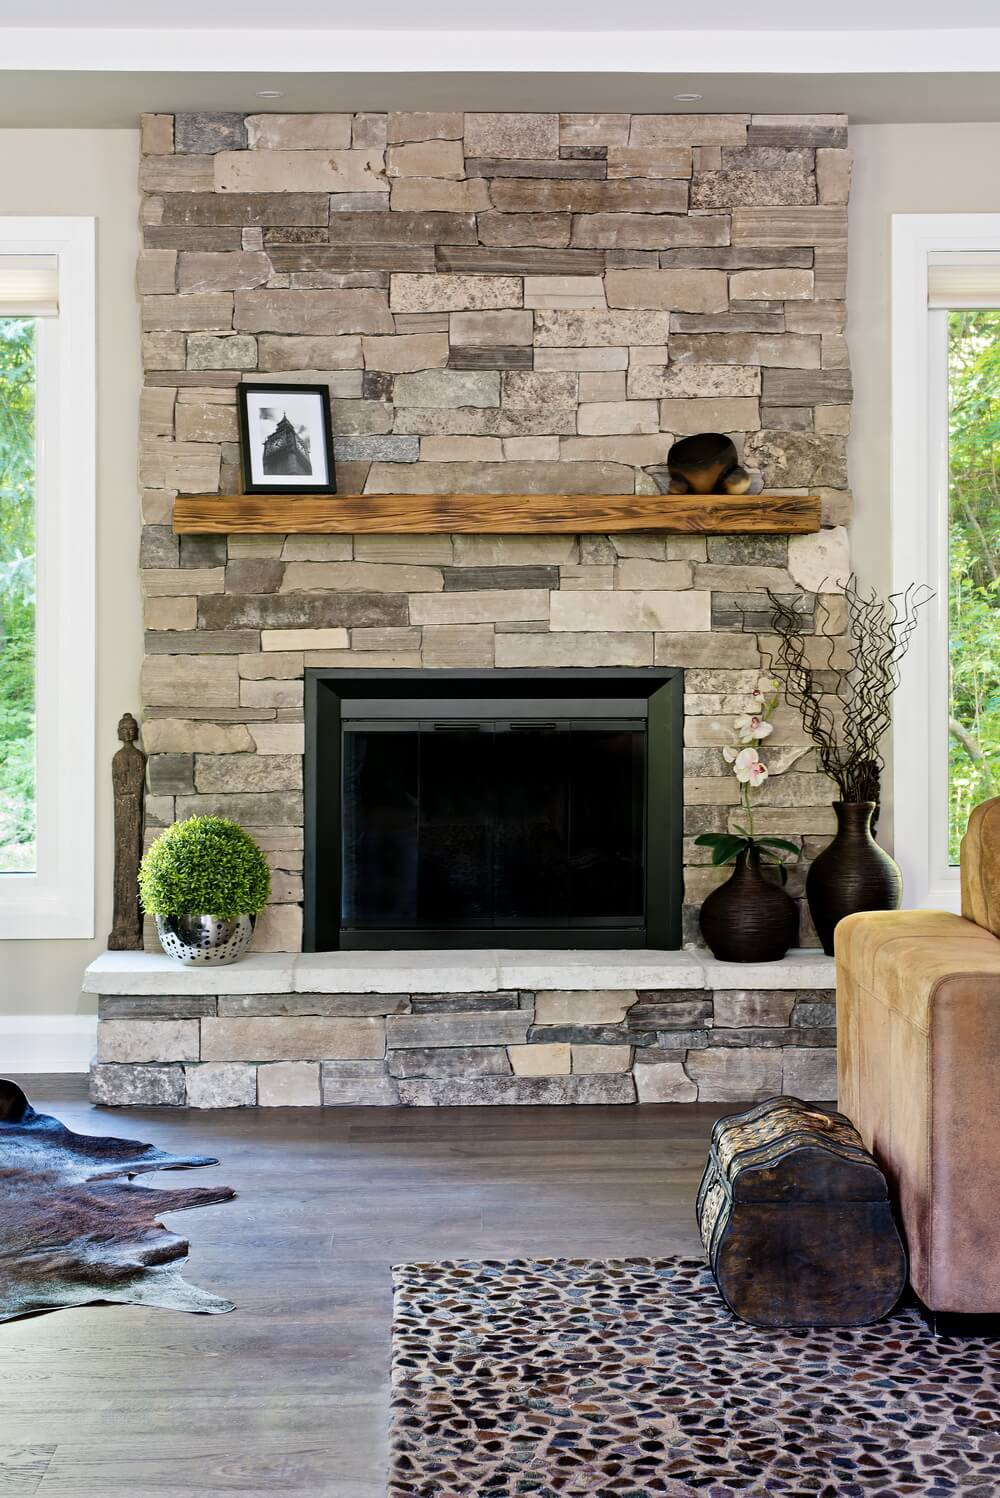 4. Floor To Ceiling Fireplace Surround